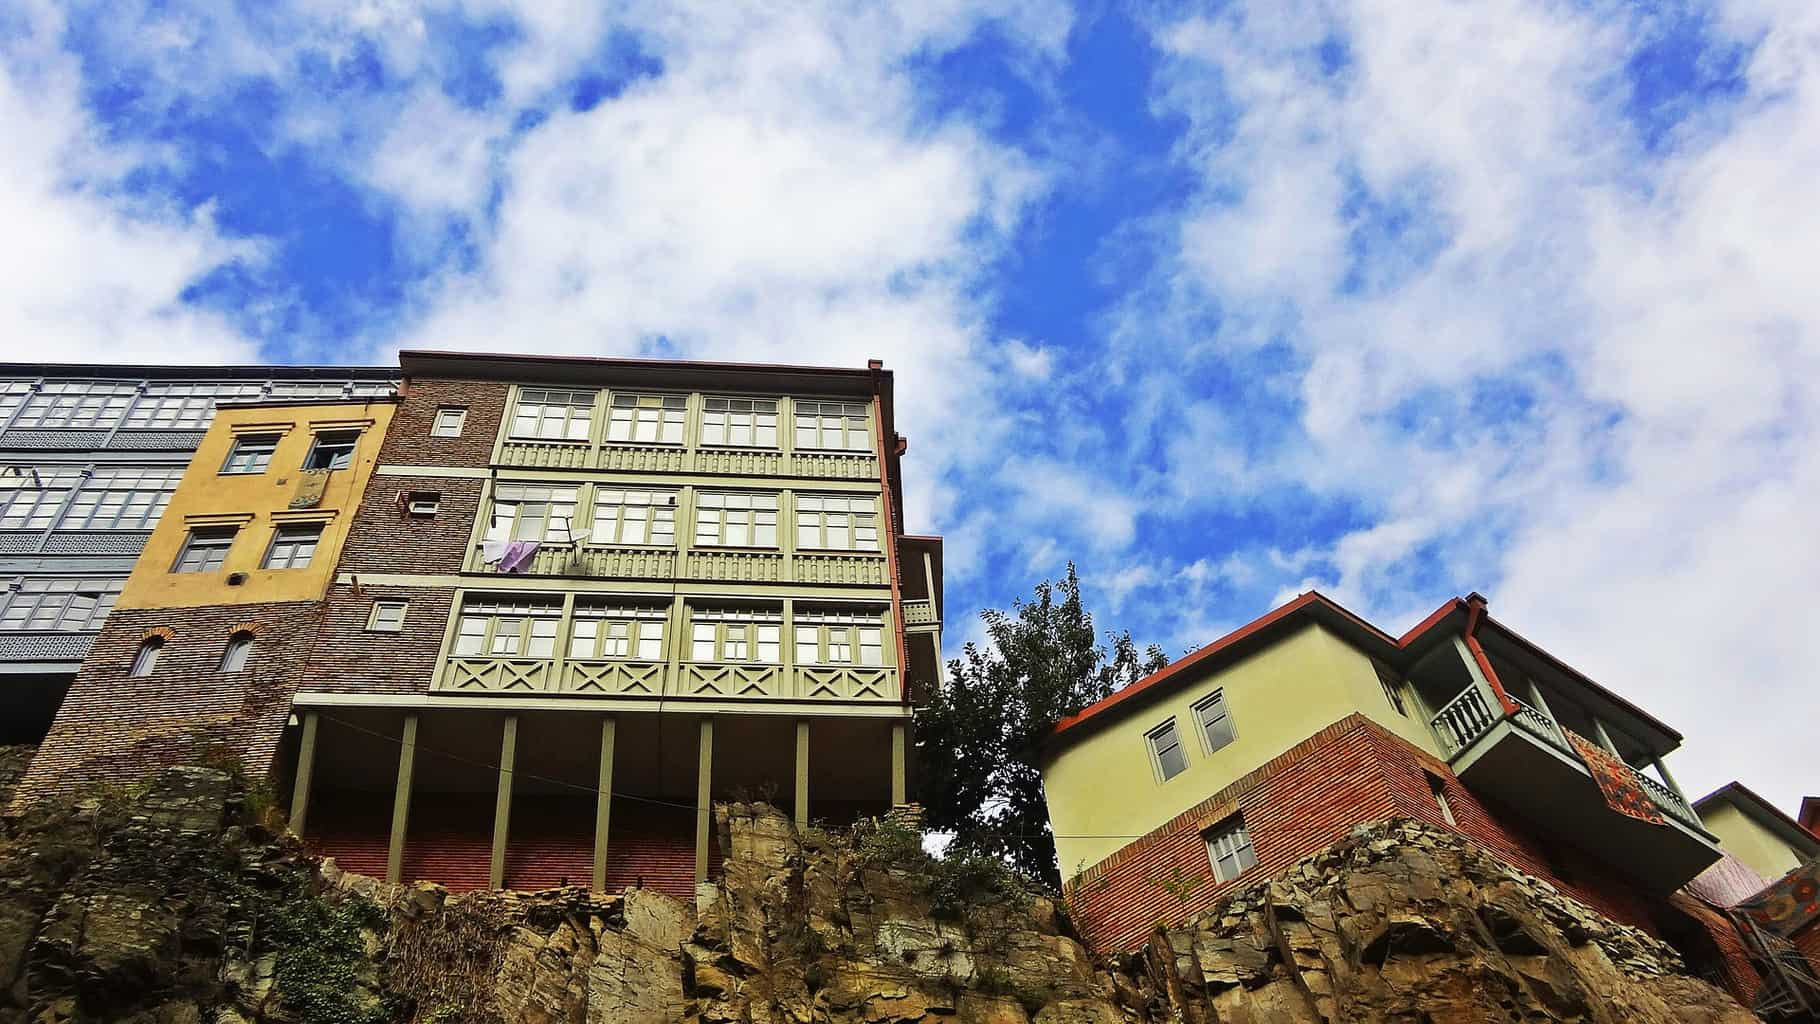 Which neighborhood in Tbilisi should you stay in?